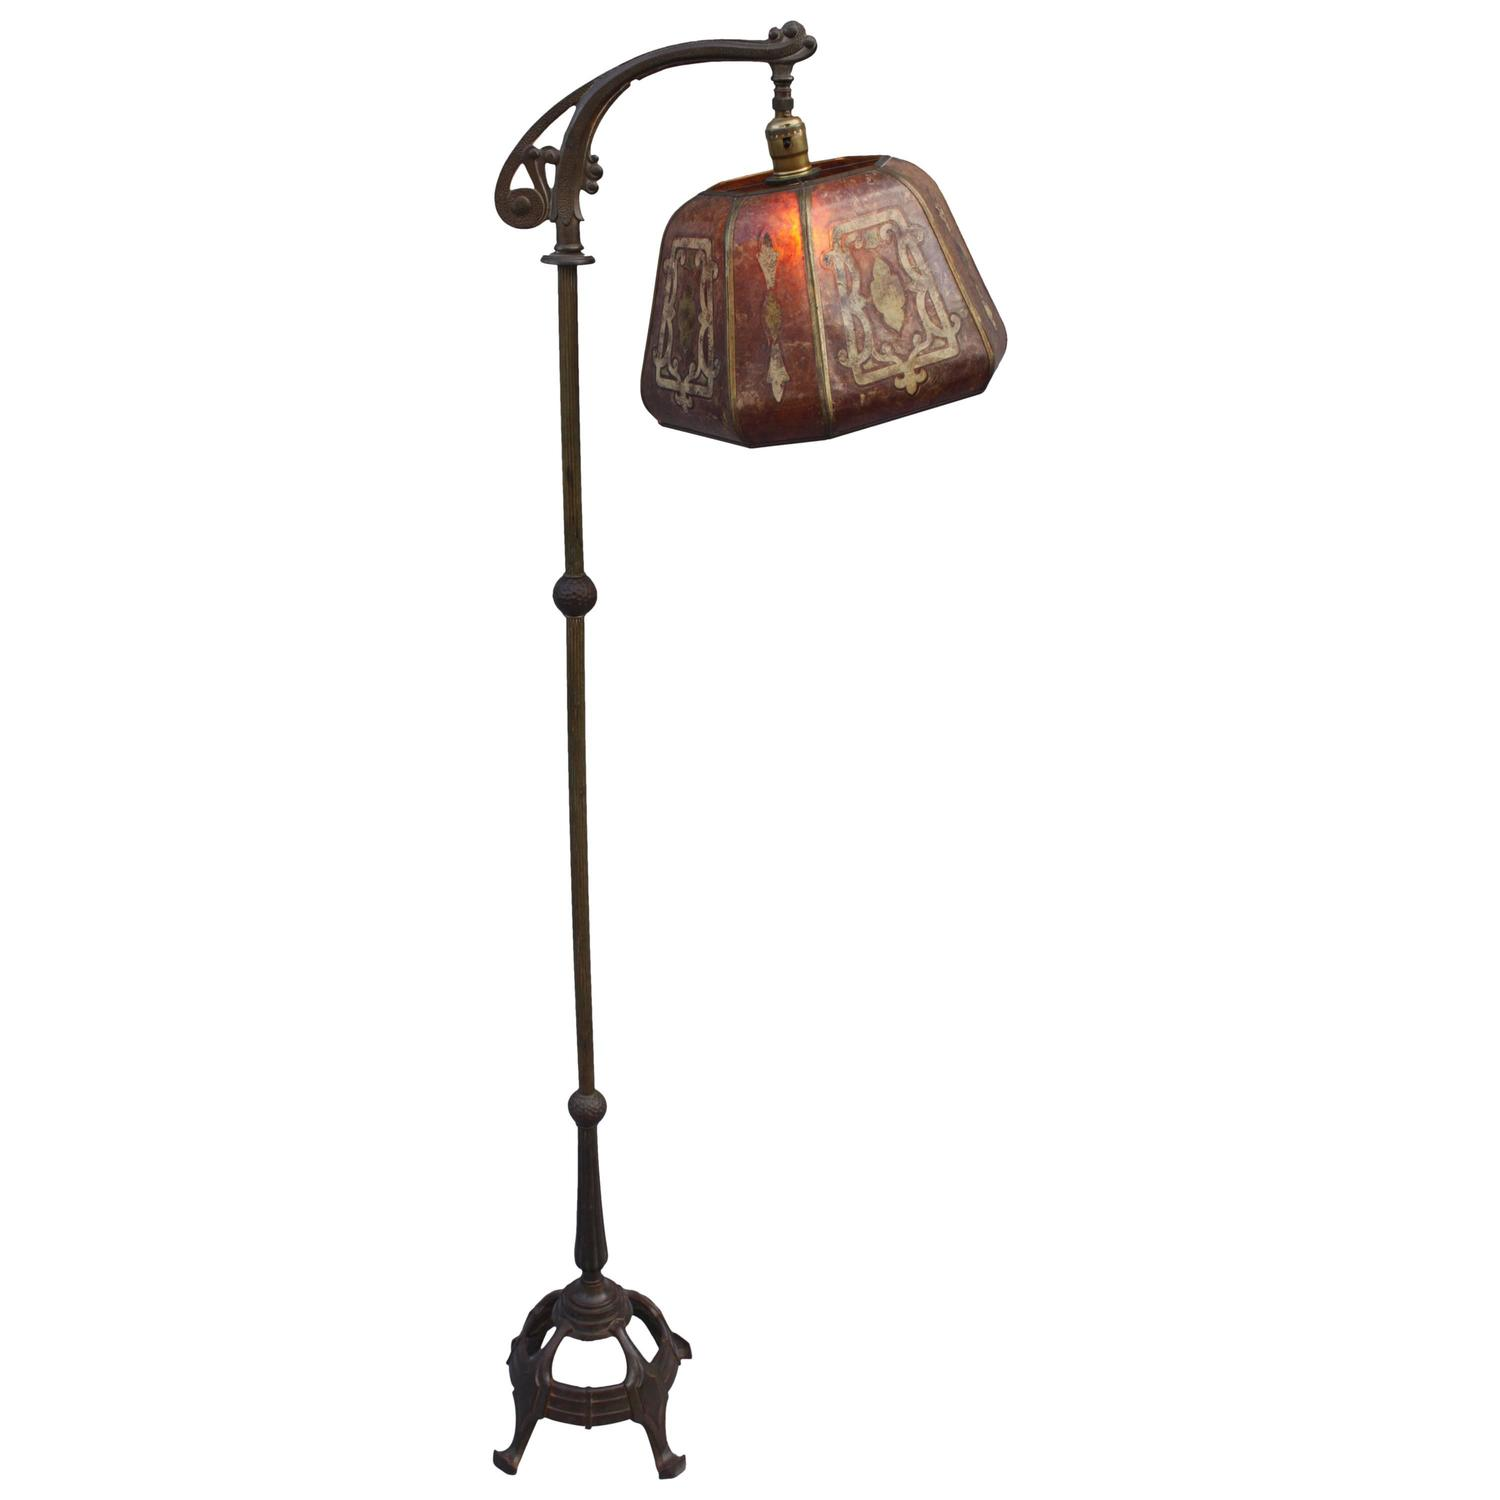 1920s bridge floor lamp with period mica shade at 1stdibs for 1920 floor lamp